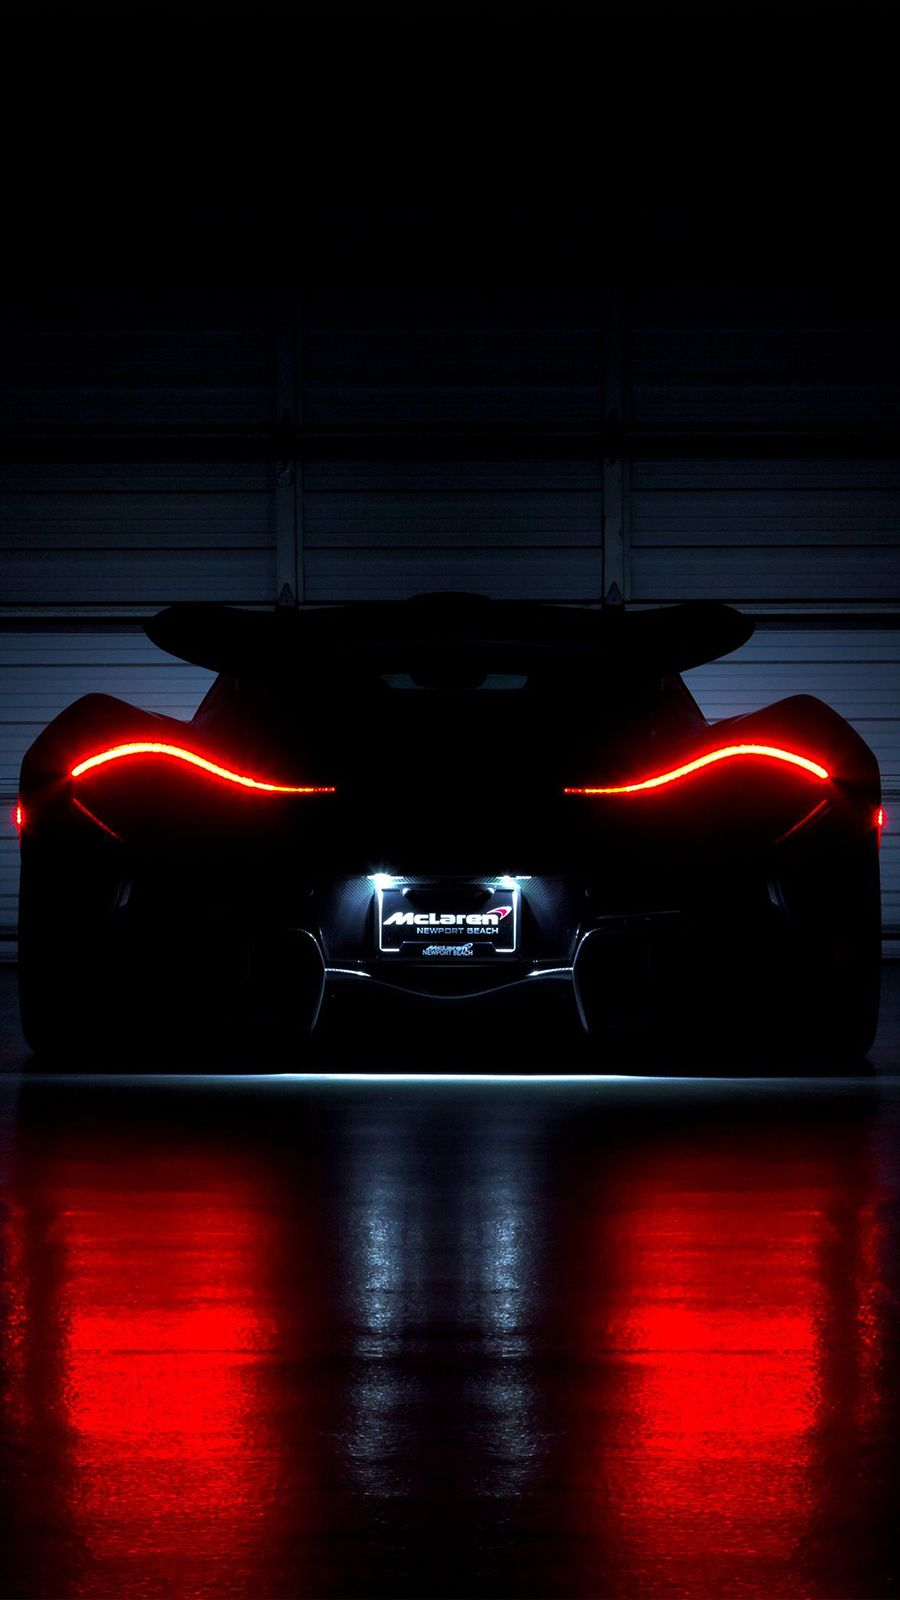 Back View Supercars Hd Wallpapers Free Download Bestwallpapers Mclaren Cars Car Wallpapers Mclaren P1